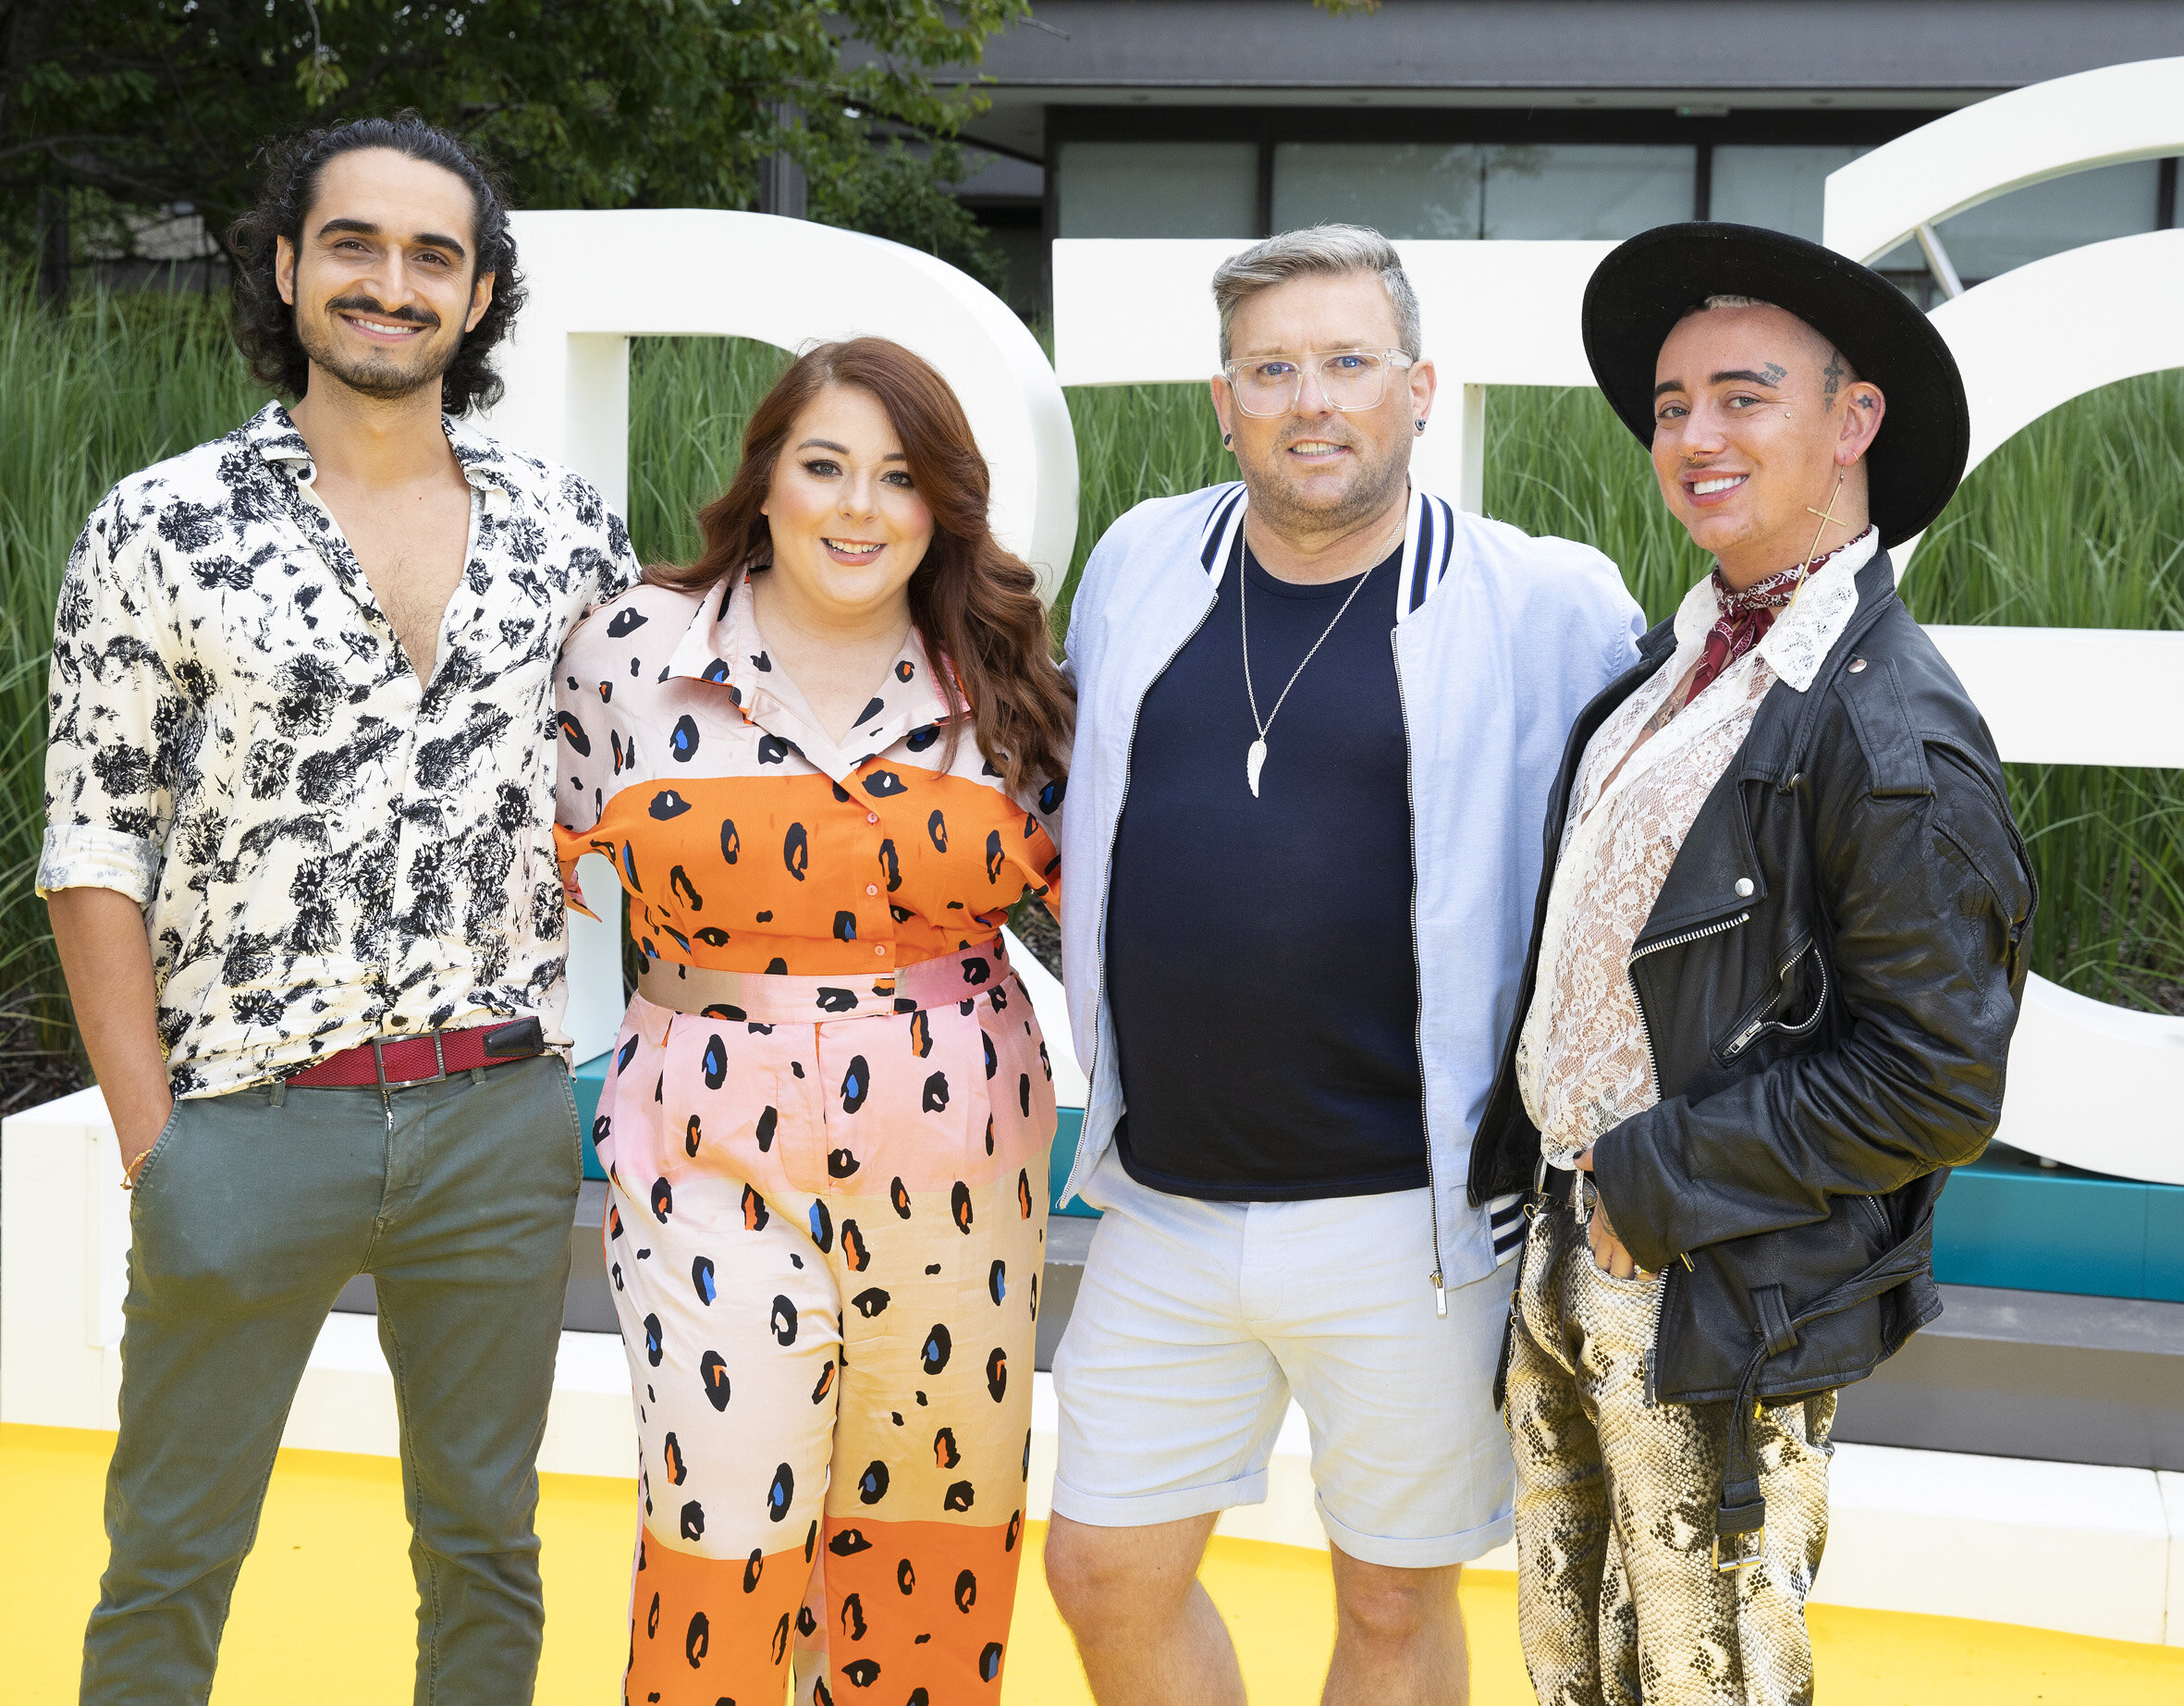 NO REPRO FEE RTÉ today announced a slate of new impactful Irish programming, star signings and a strong focus on climate as part of its upcoming new season. Pictured are: Yello Brick Road's Greg Xavier, Claire Fullam, Noel Sutton and Jordan Dunbar. Picture: Kinlan Photography.